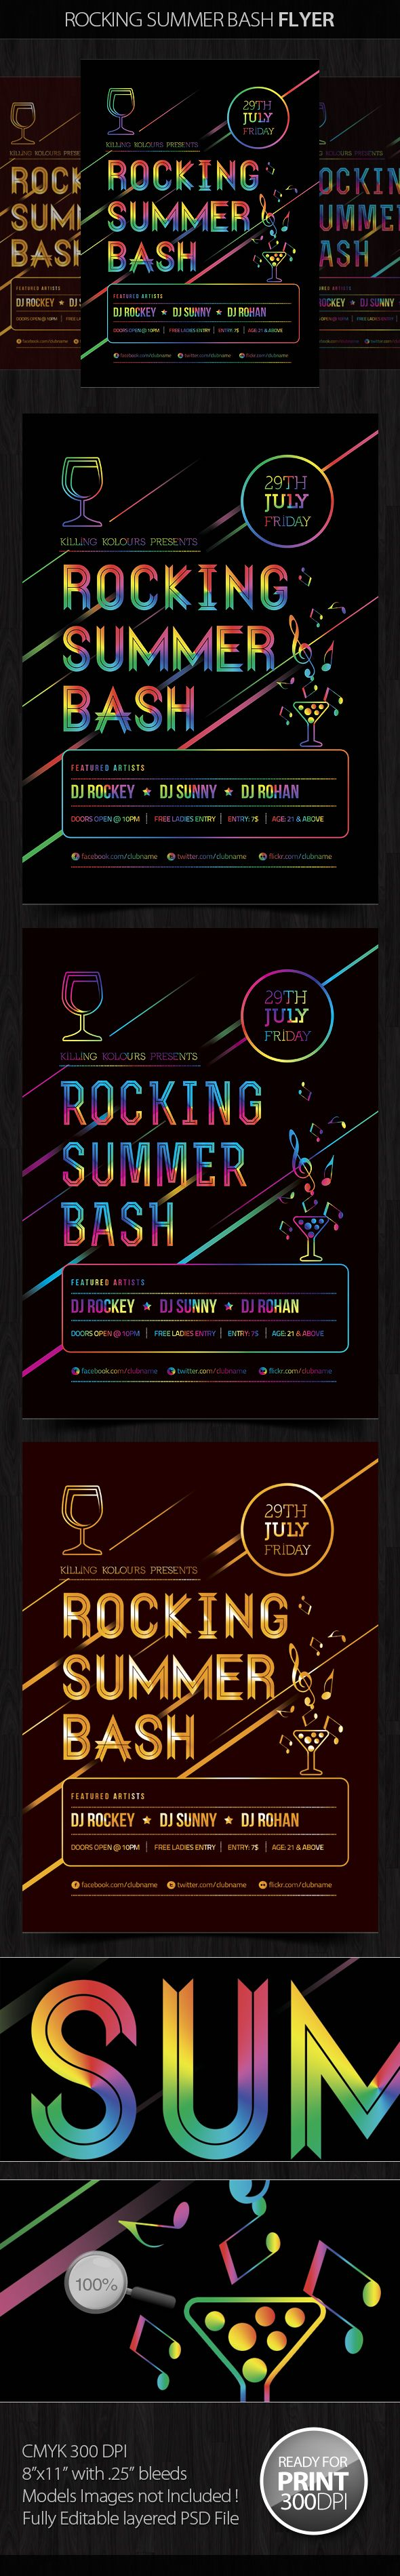 Rocking Summer Bash Party Flyer by Mahantesh Nagashetty, via Behance